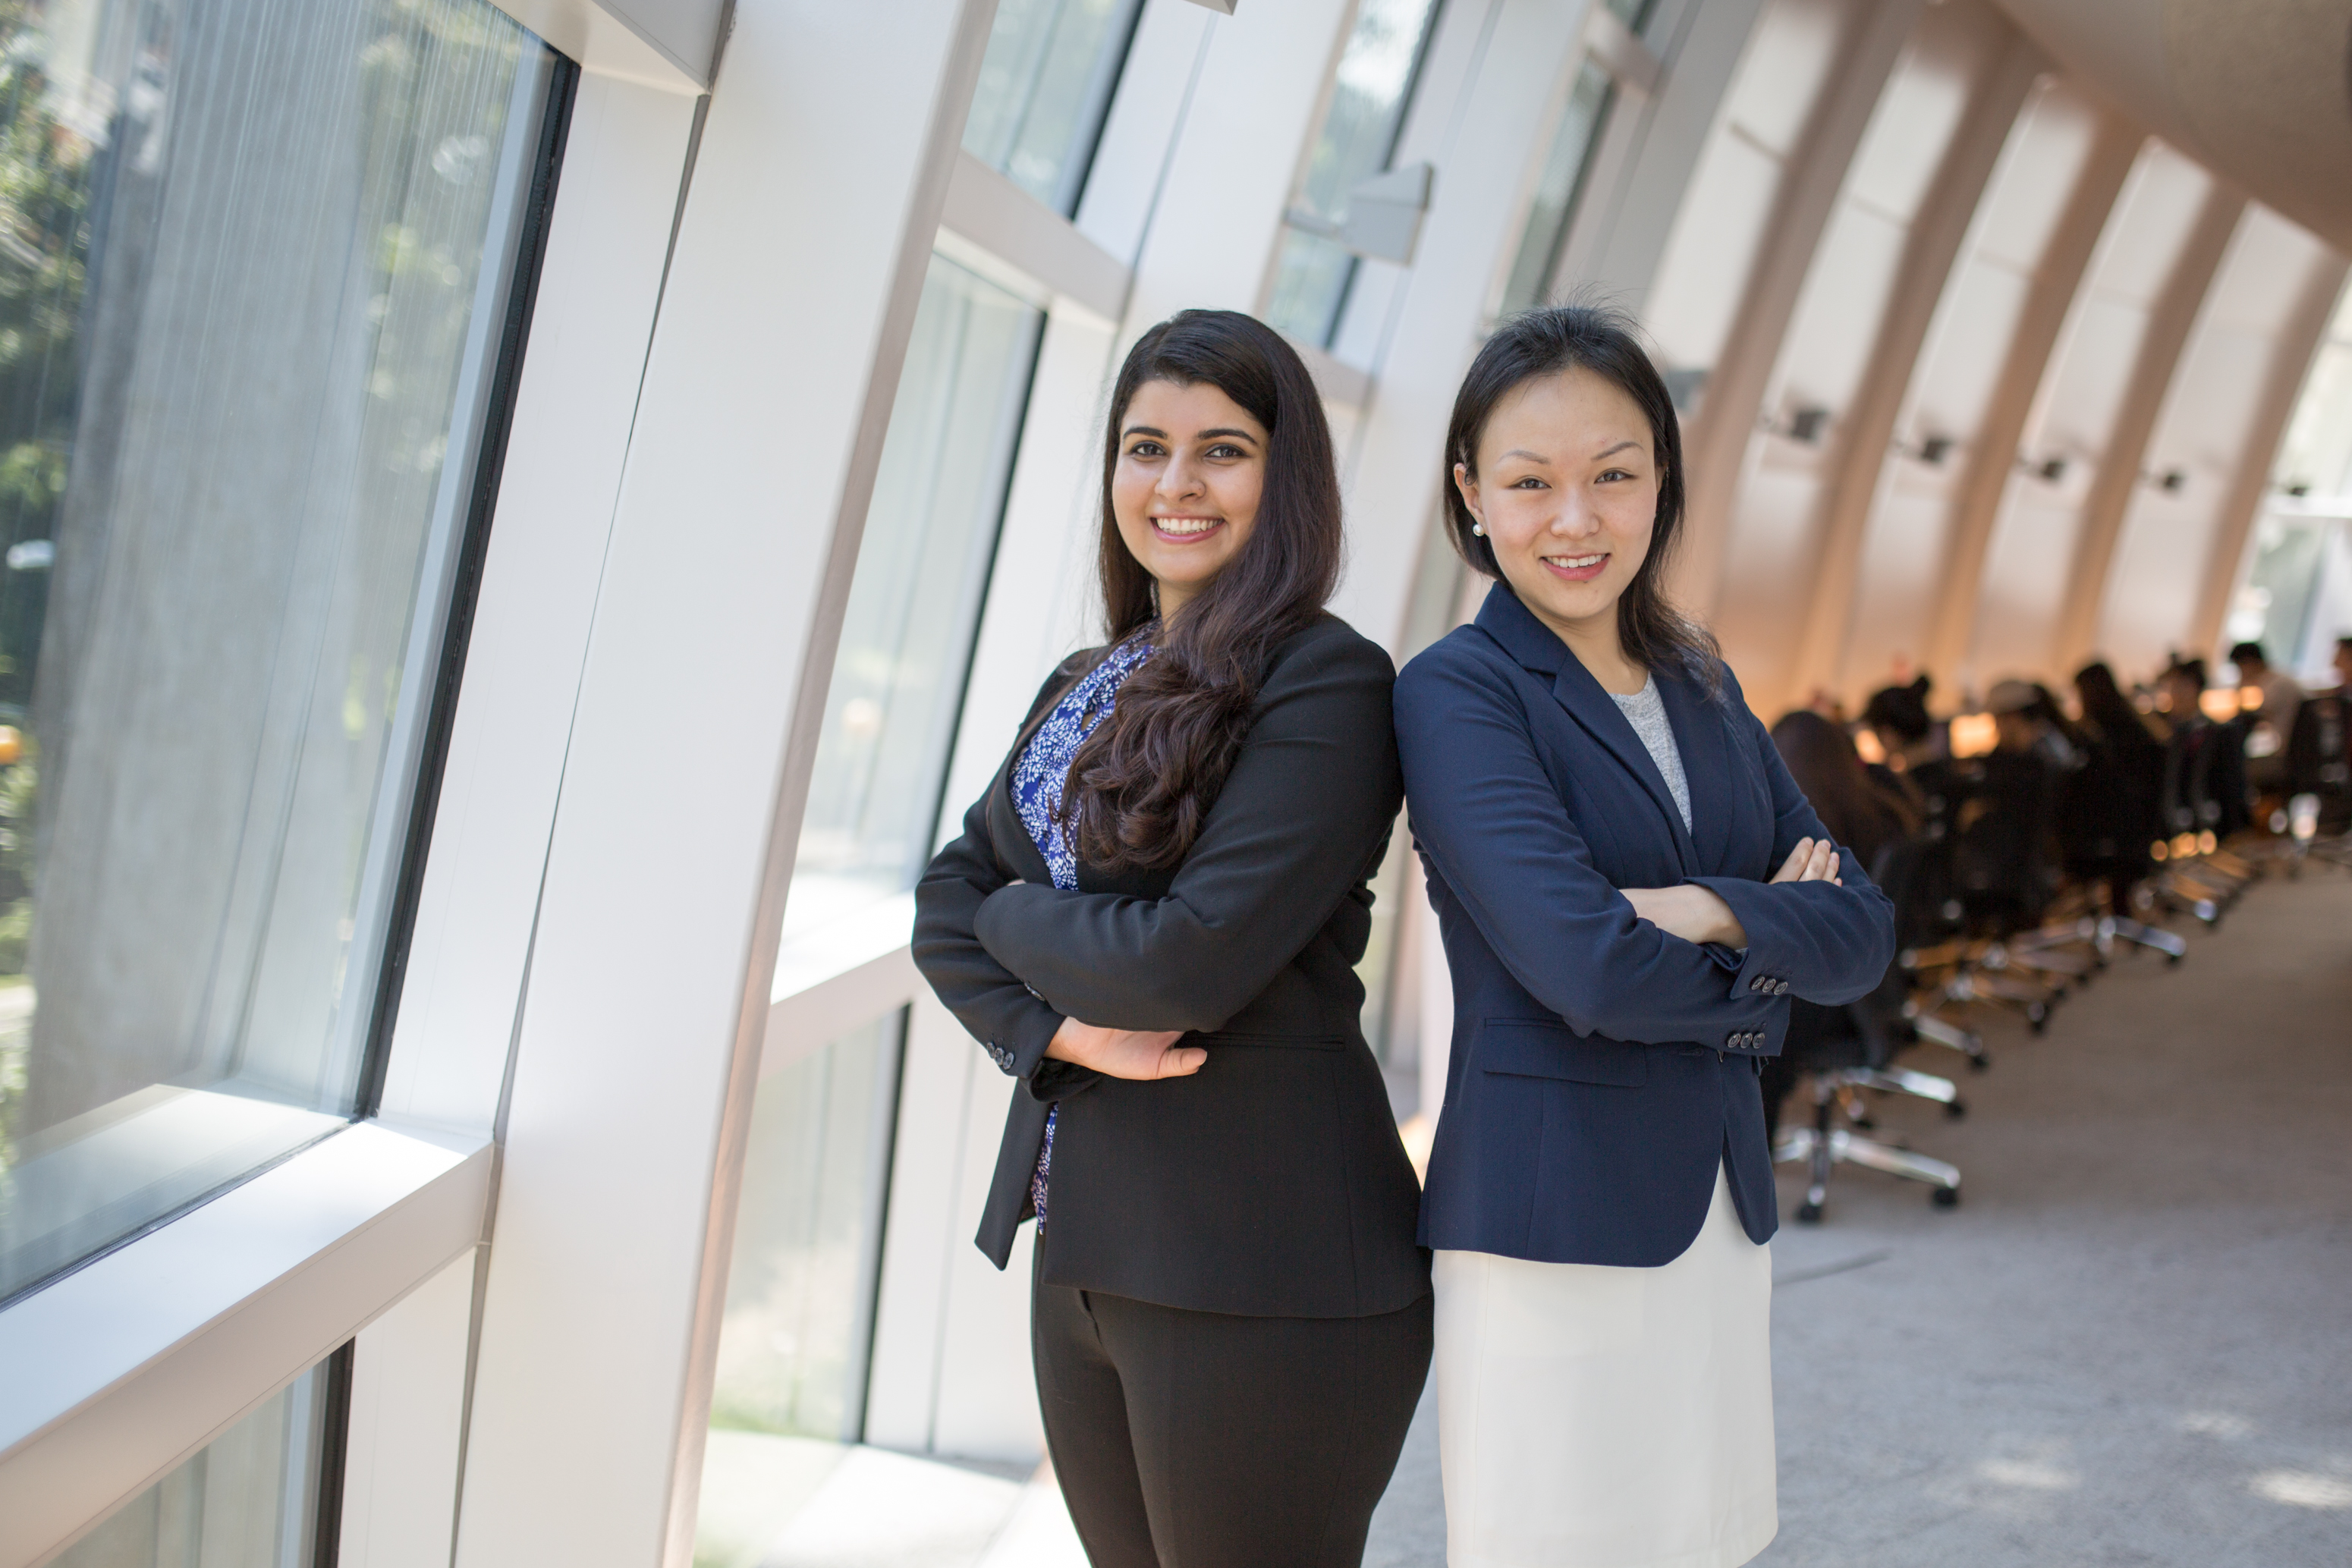 SMU recipients Shaily Sharma and Zhou Yuzhen